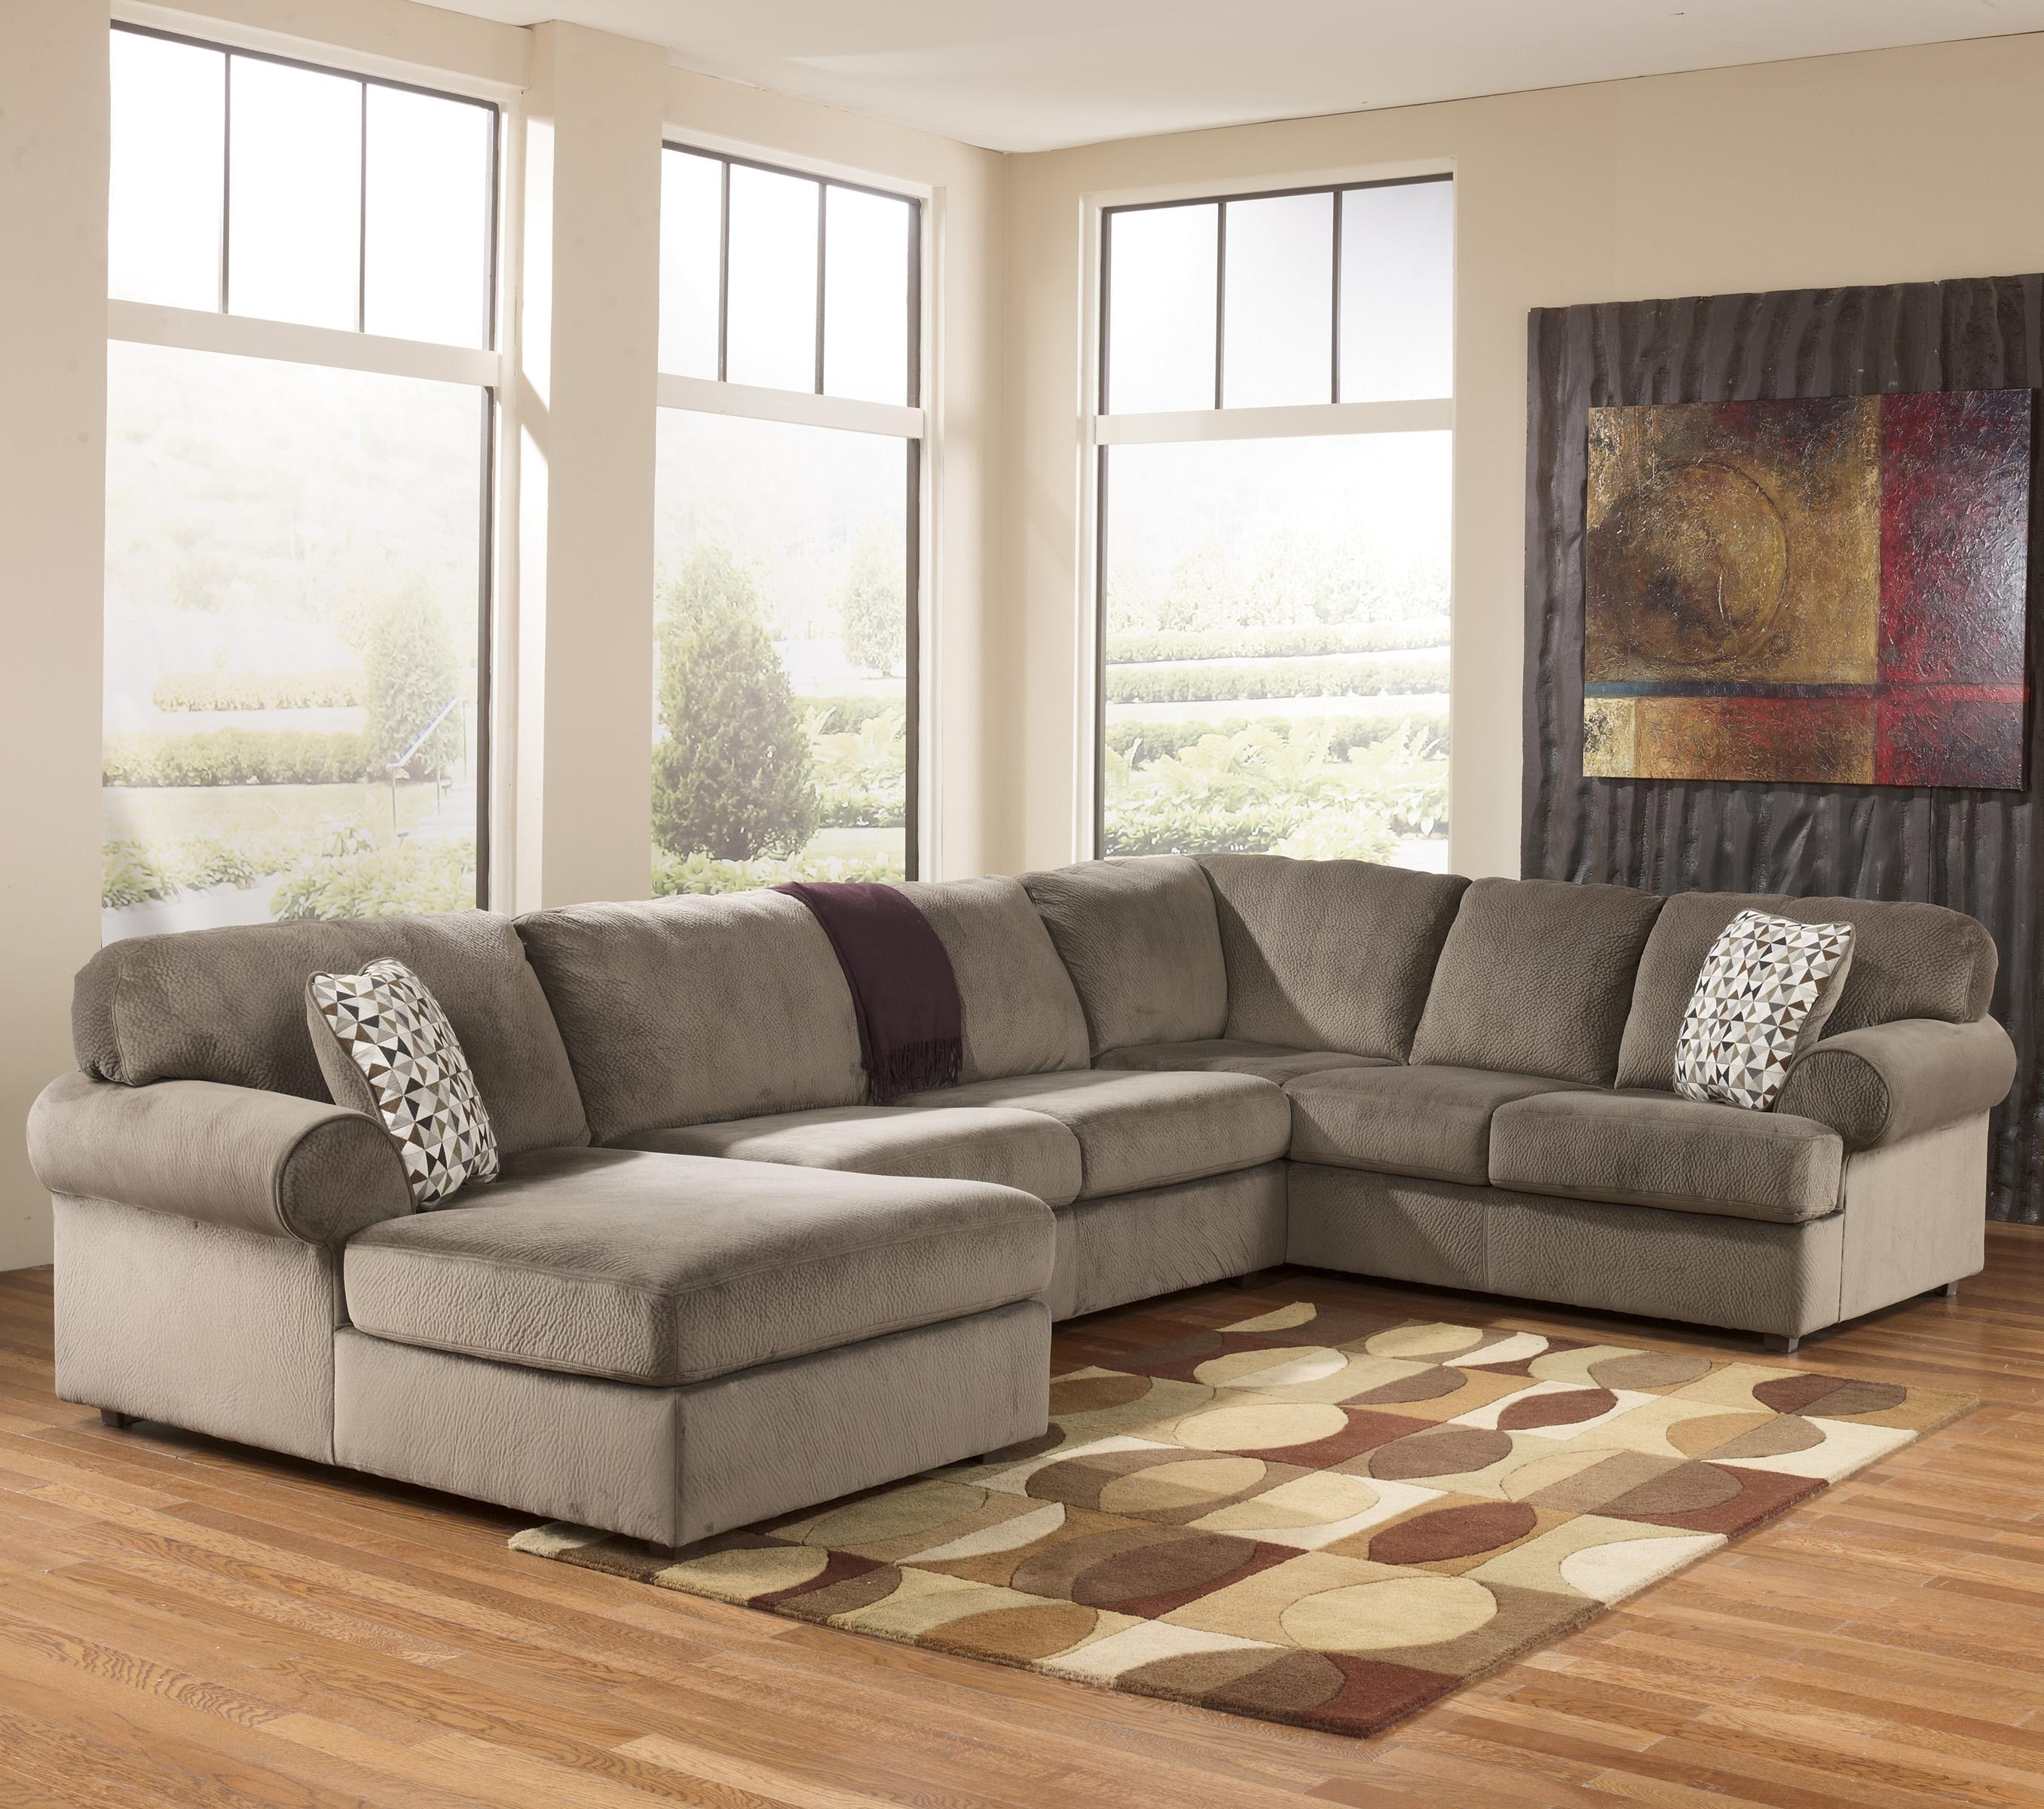 Trendy Signature Designashley Jessa Place – Dune Casual Sectional With Regard To El Paso Tx Sectional Sofas (View 14 of 15)